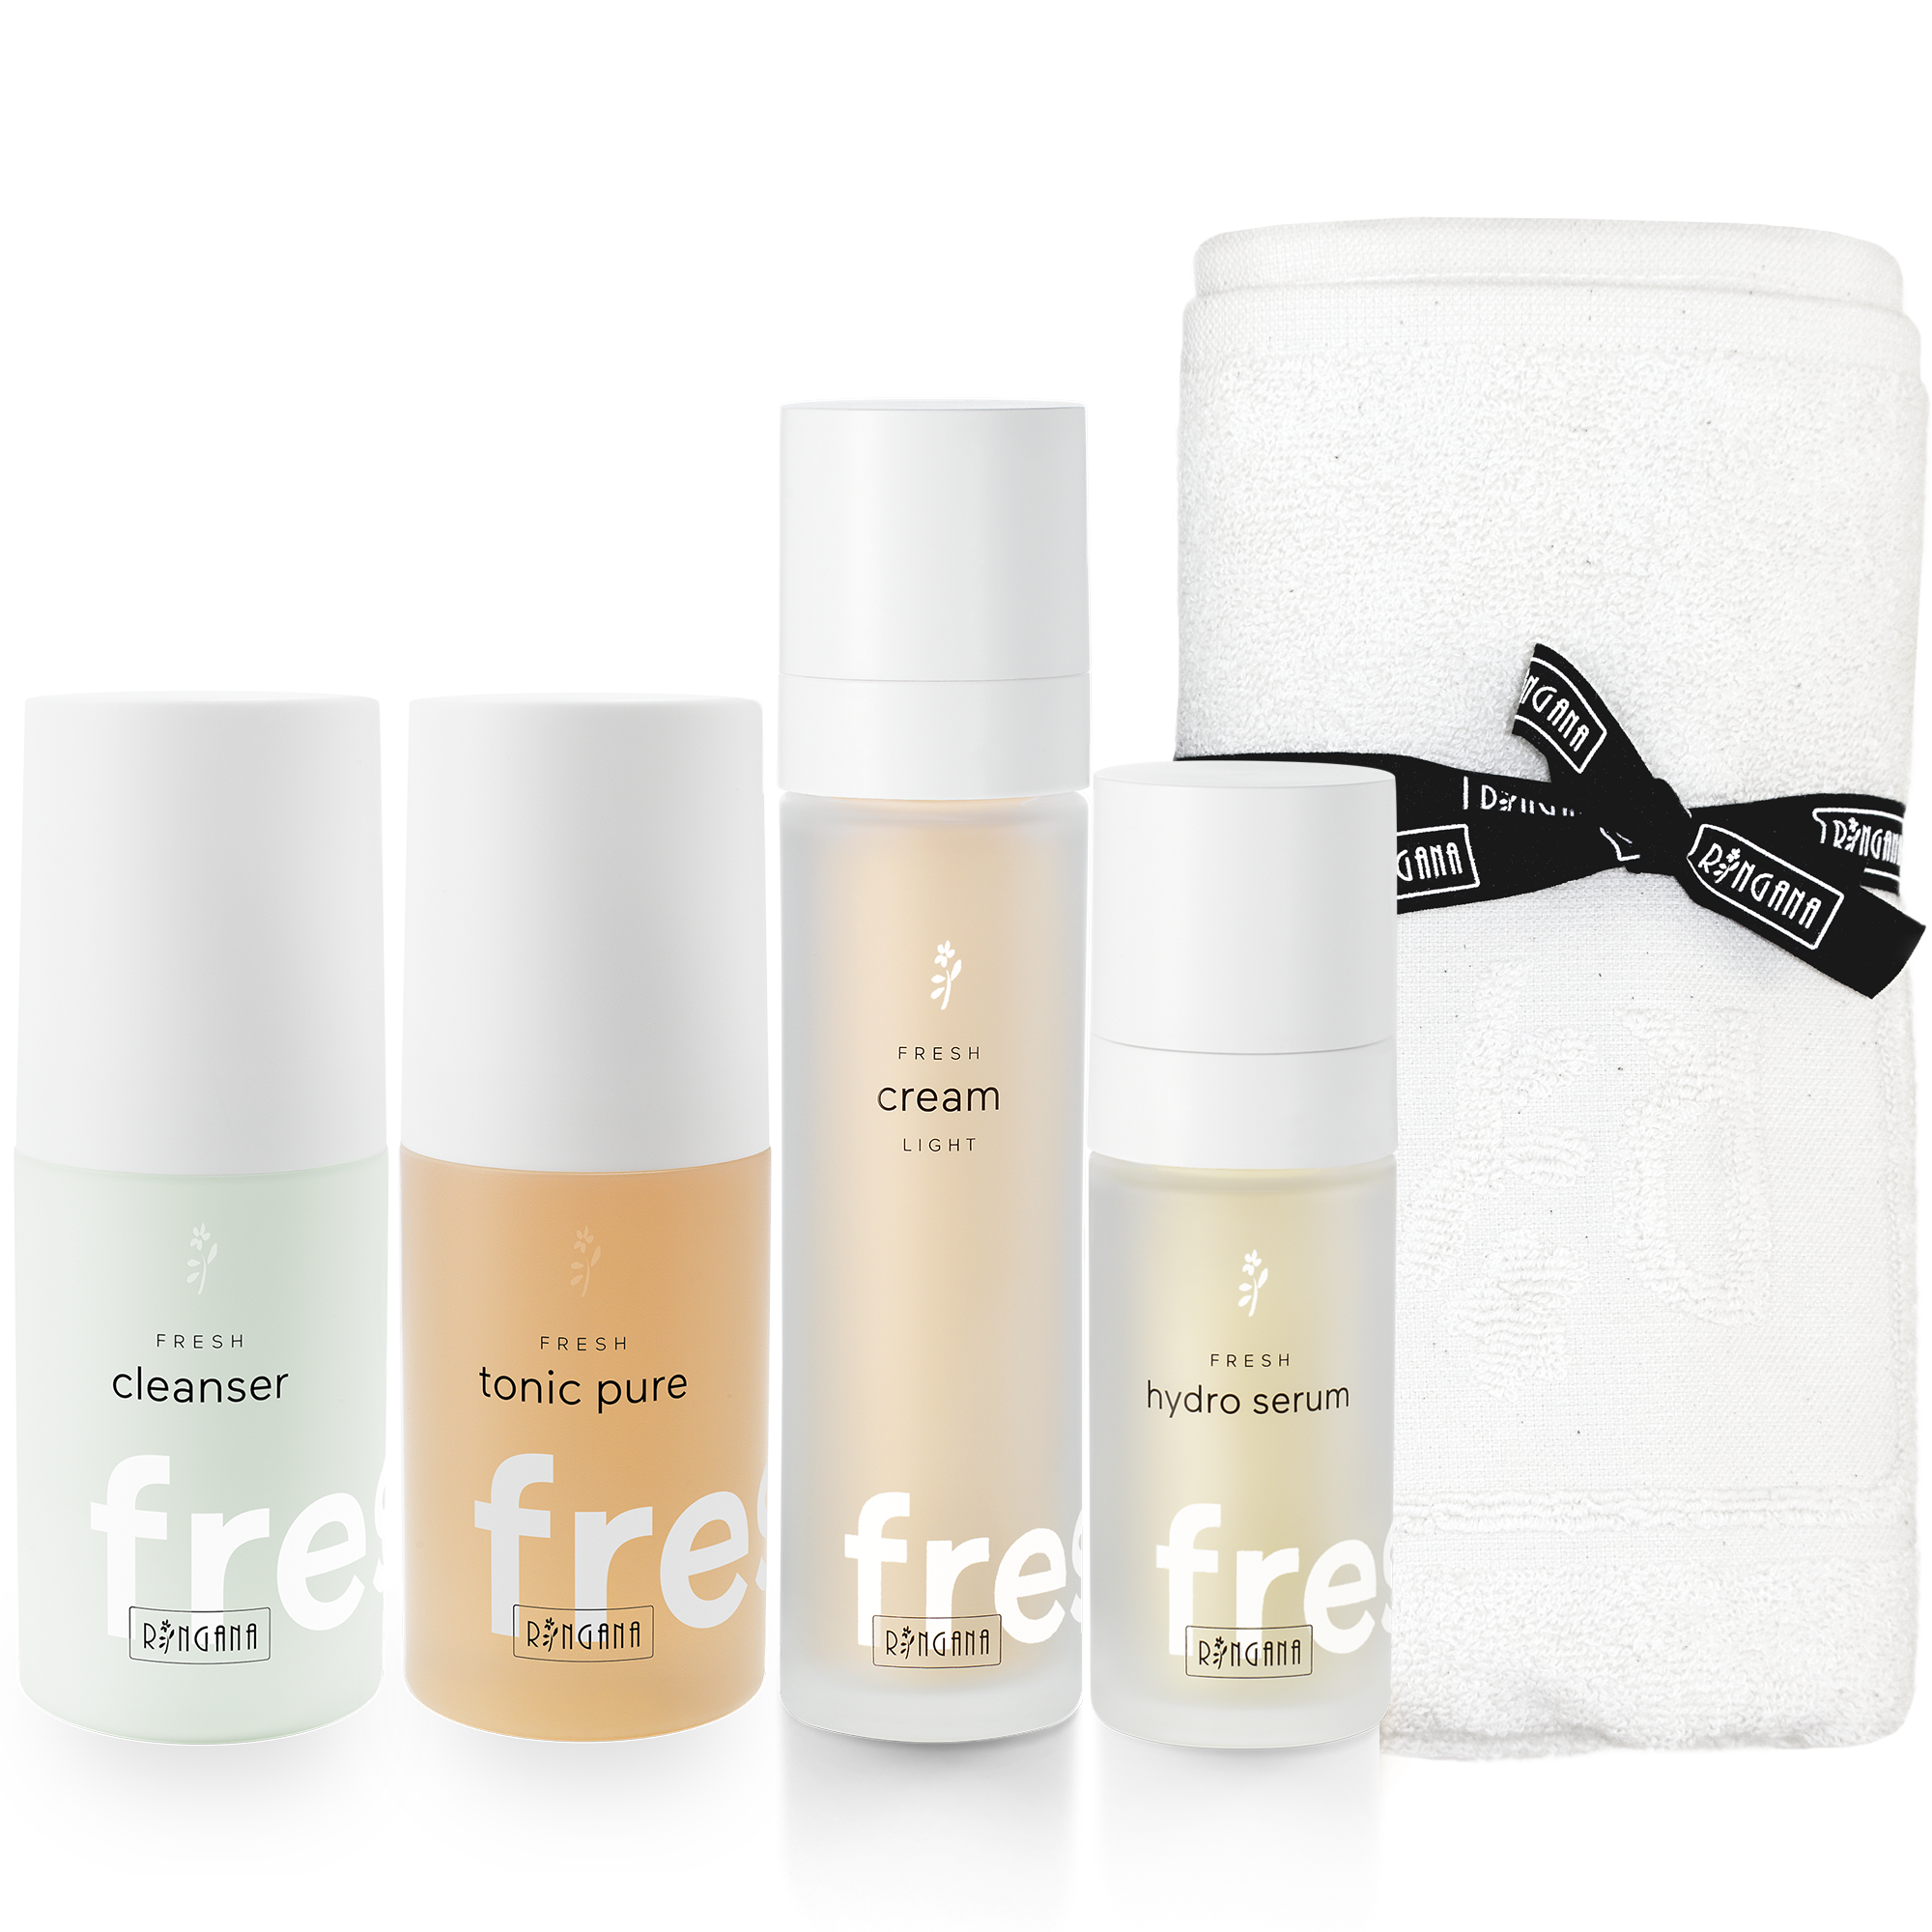 FRESH skin care set light - For pure well-being330 ml - € 119,70Your Fresh skin care set consists of two cleansing and two care products to suit your skin type and condition. The perfect basic care programme for daily beauty and wellbeing. For each care set, RINGANA will give you an organic cotton hand towel – the perfect Fresh gift for yourself or someone else.